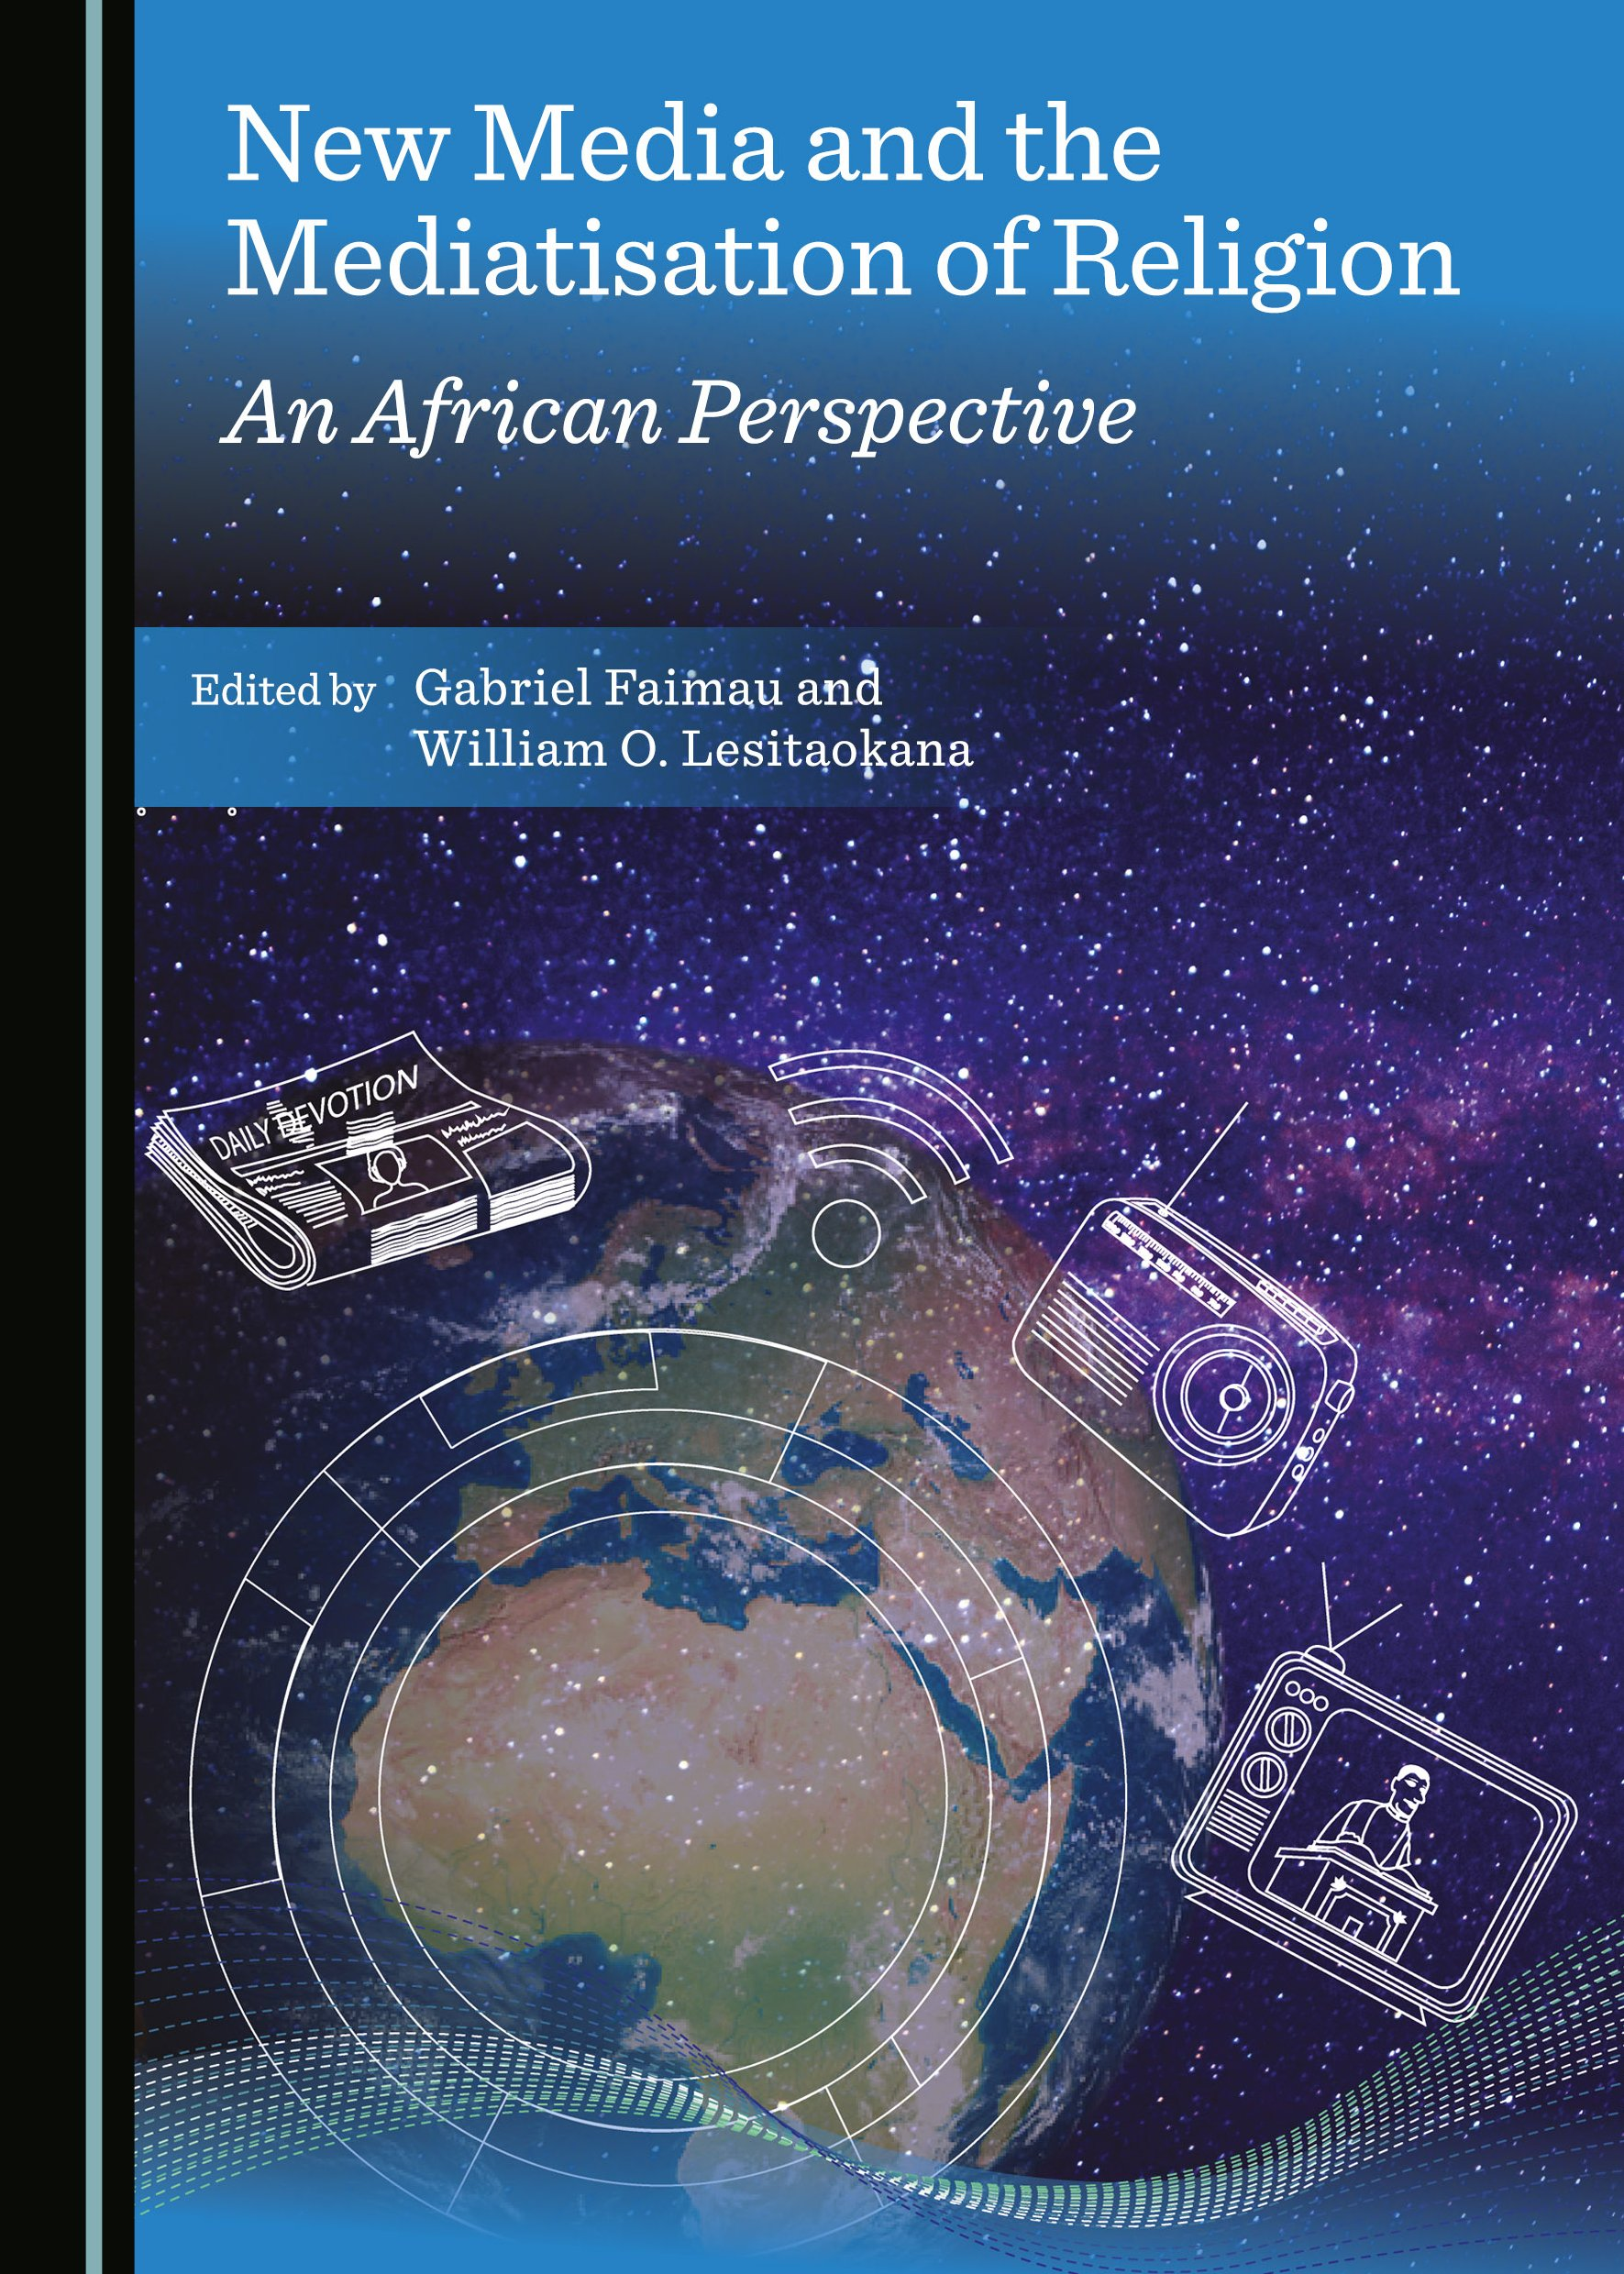 New Media and the Mediatisation of Religion: An African Perspective